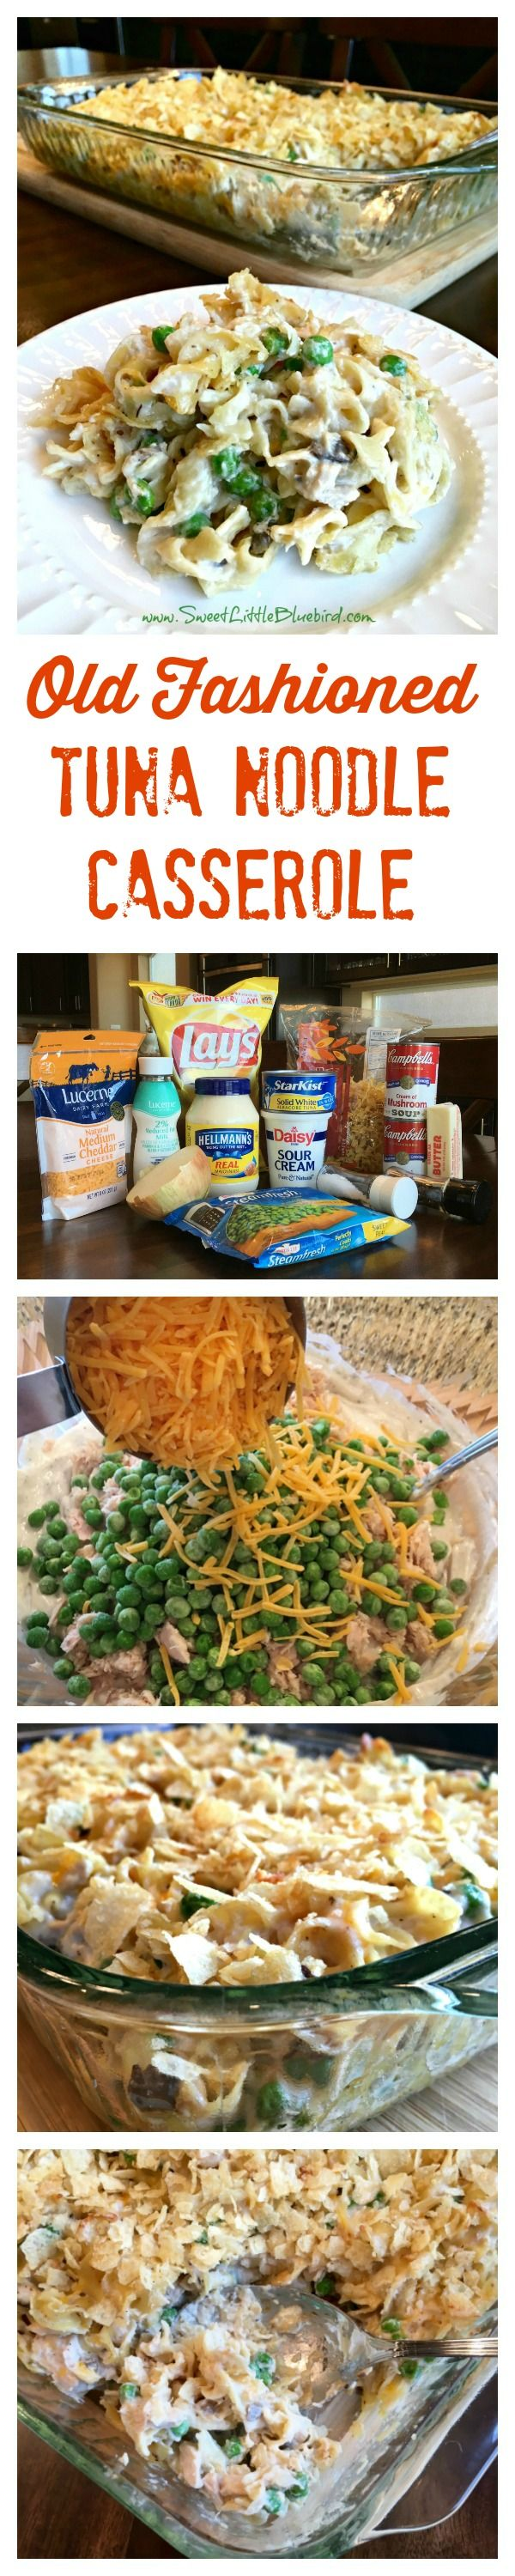 OLD FASHIONED TUNA NOODLE CASSEROLE - Simple to make, so good!  Easy to adapt to…